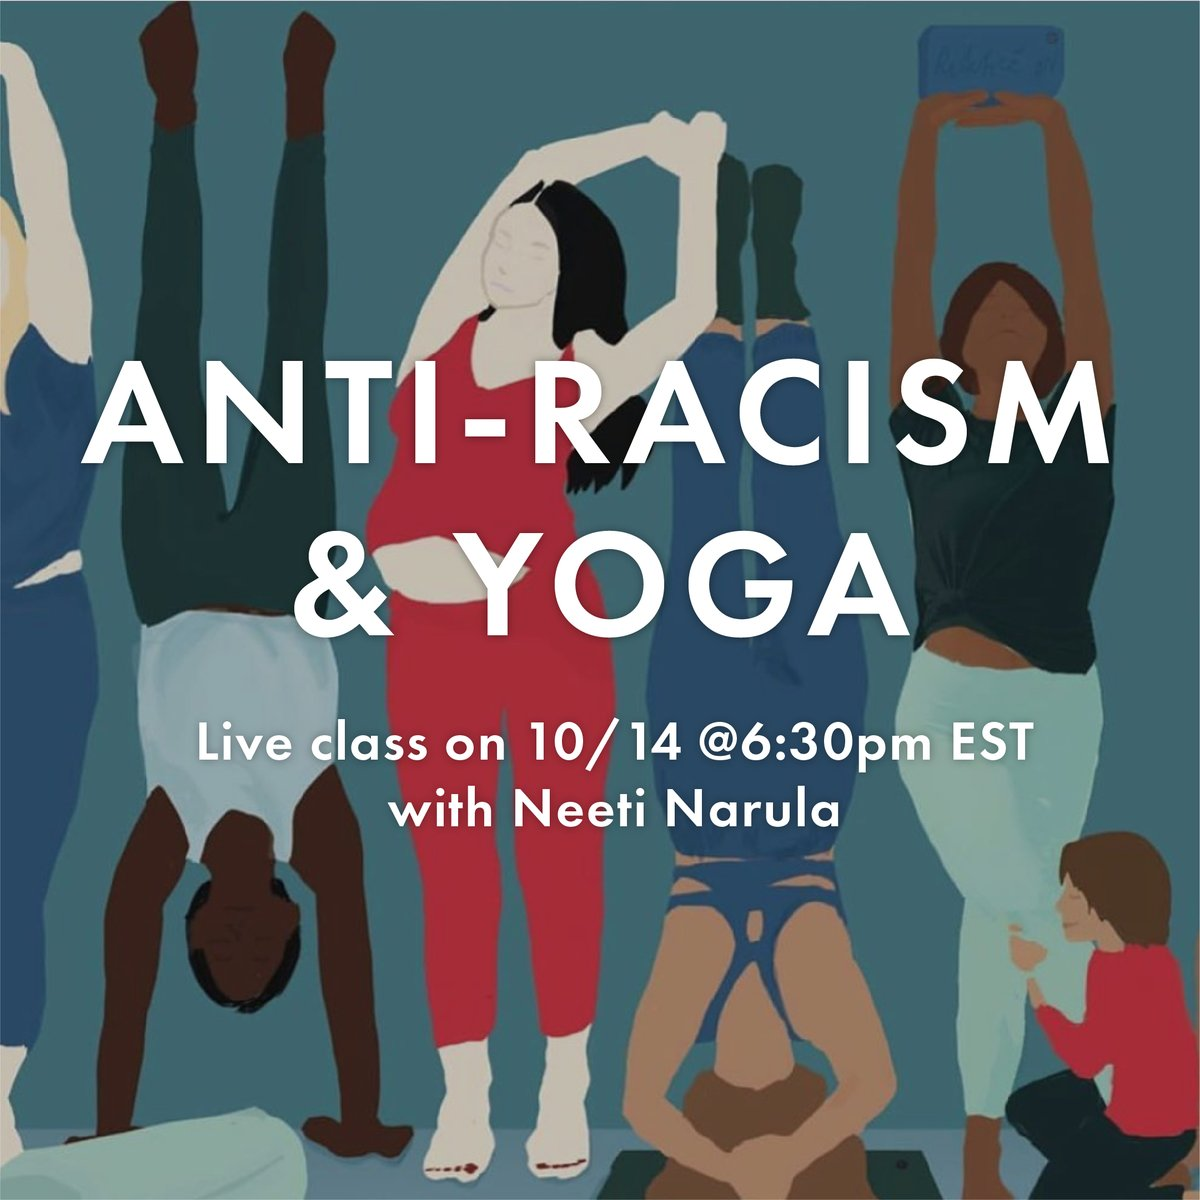 Join Manduka Ambassador, Neeti Narula next Wednesday at 6:30 PM EST for her monthly class series with the goal of raising funds for #BIPOC organizations. 100% of class proceeds next week will go to #BlackVotersMatter.  Sign up here to attend ➡️ https://t.co/h2h52WozRu https://t.co/Cw13hjI1qY